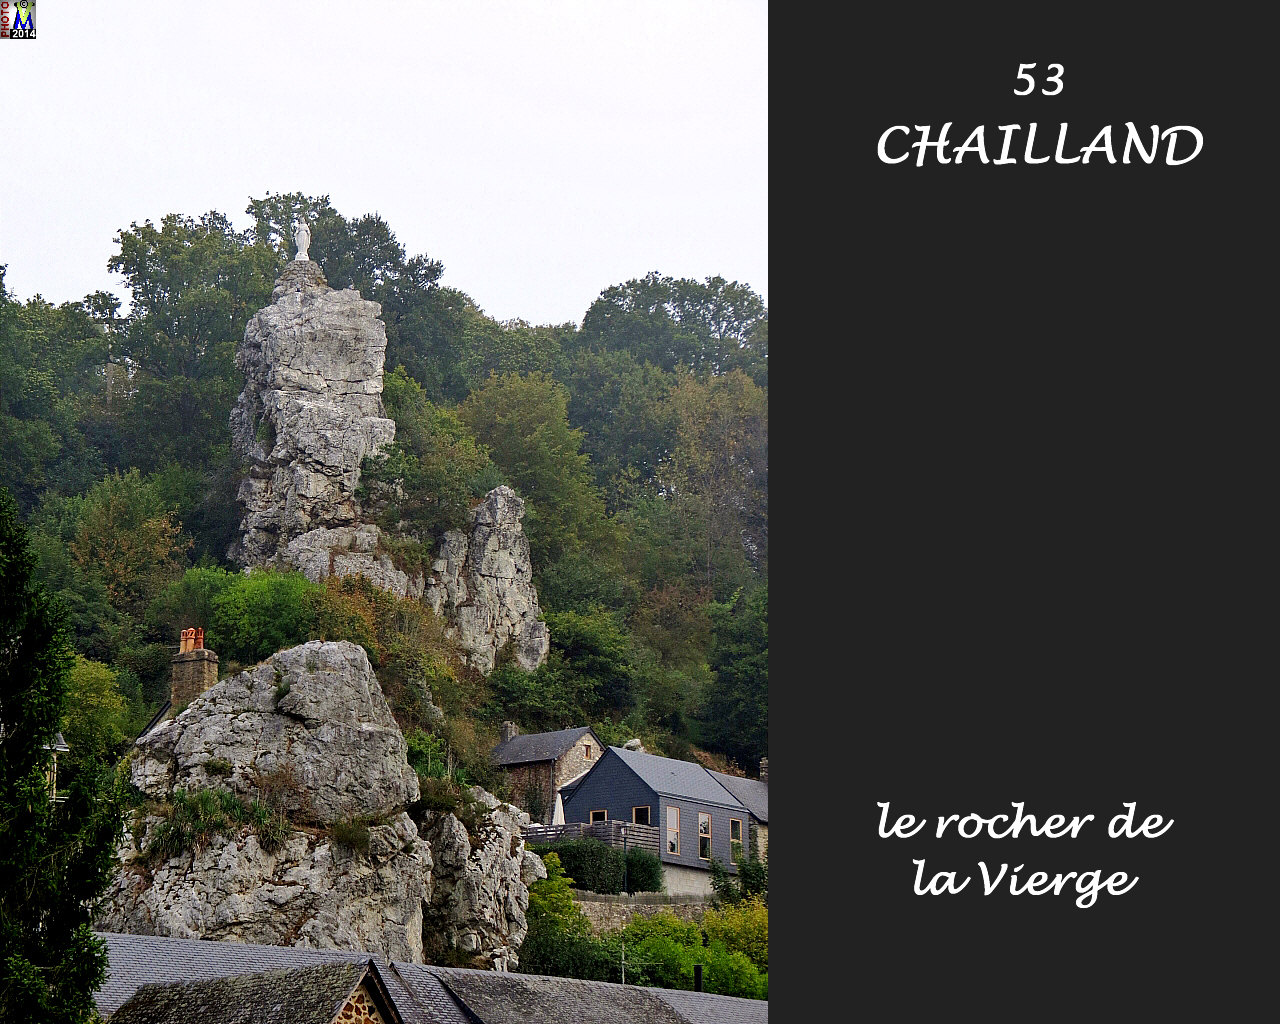 53CHAILLAND_rocherVierge_104.jpg